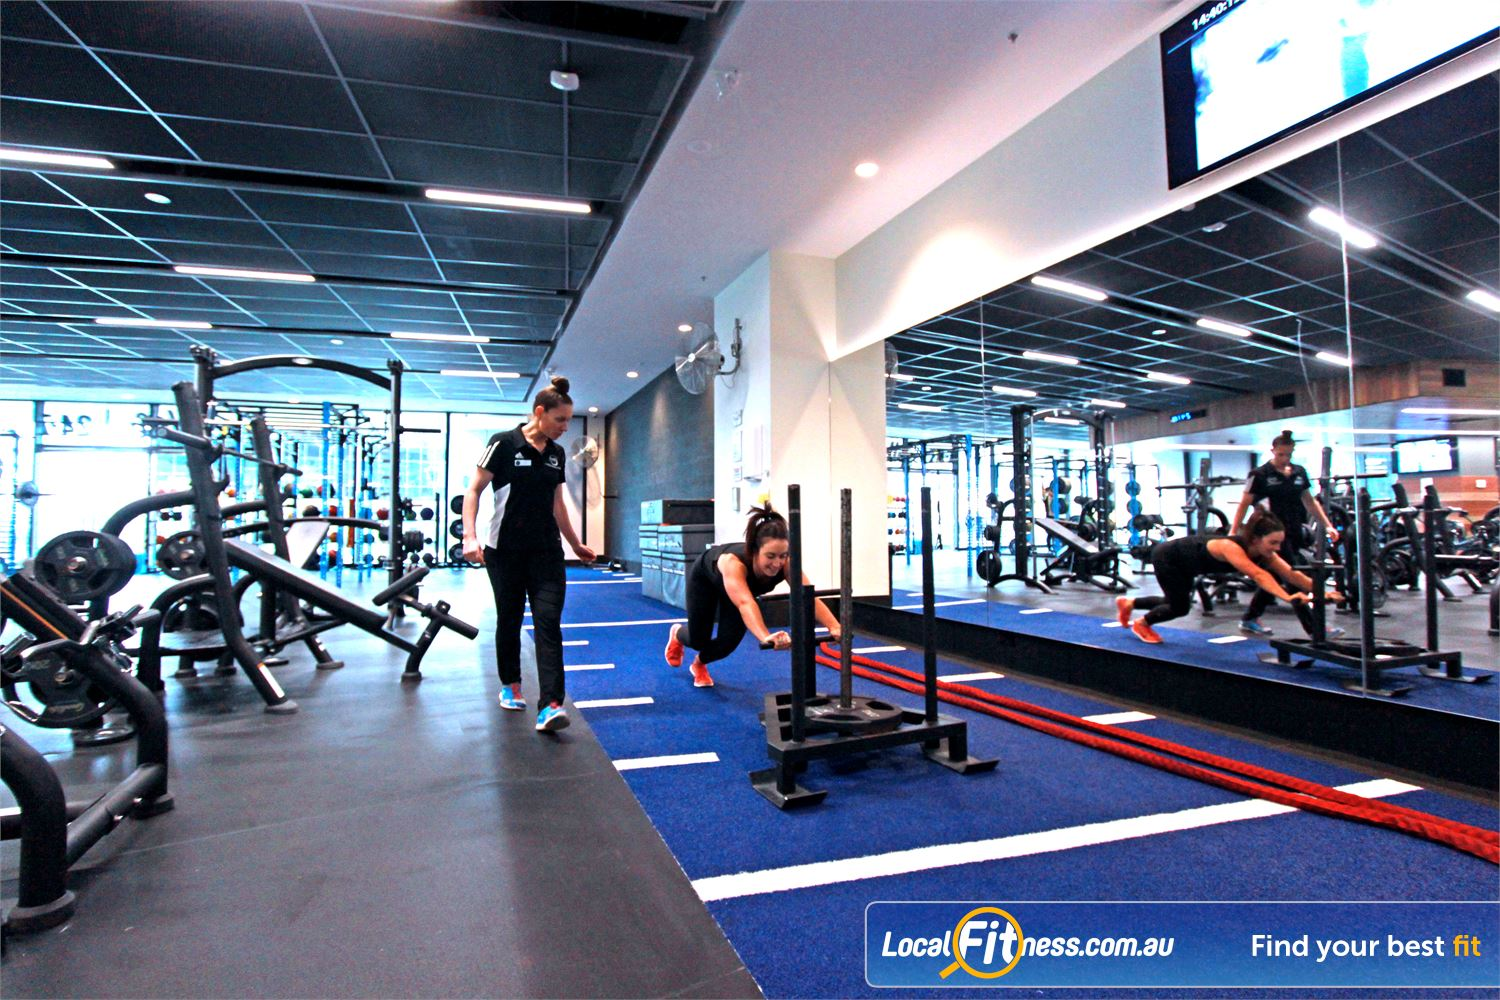 Goodlife Health Clubs Docklands Goodlife Docklands is fully equipped for functional training.